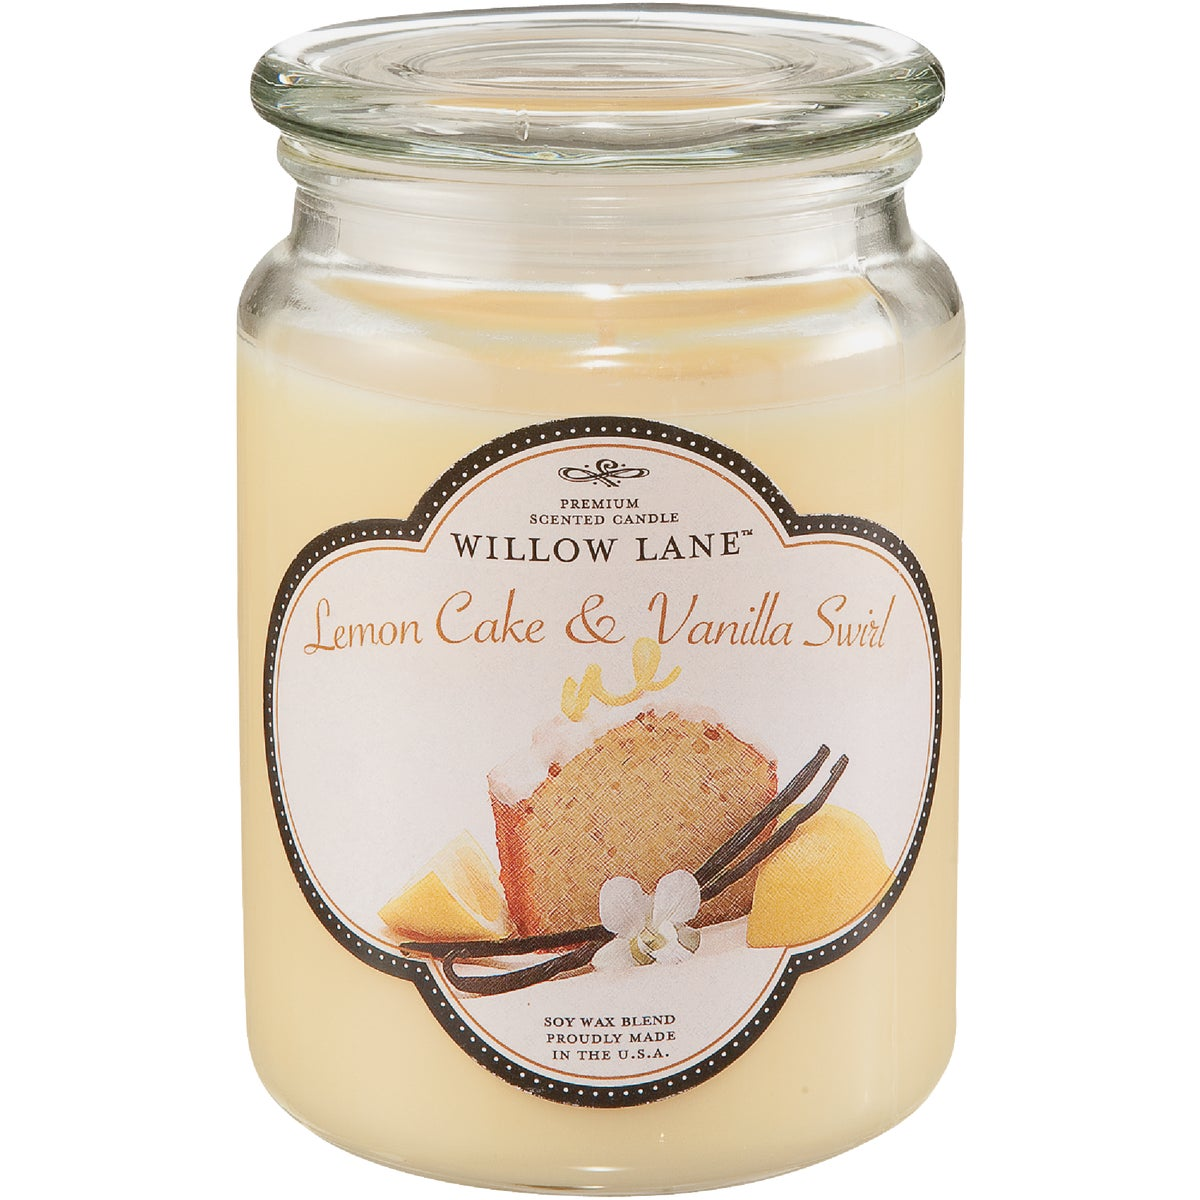 LEMONCAKE/VAN JAR CANDLE - 1646864 by Candle Lite Co